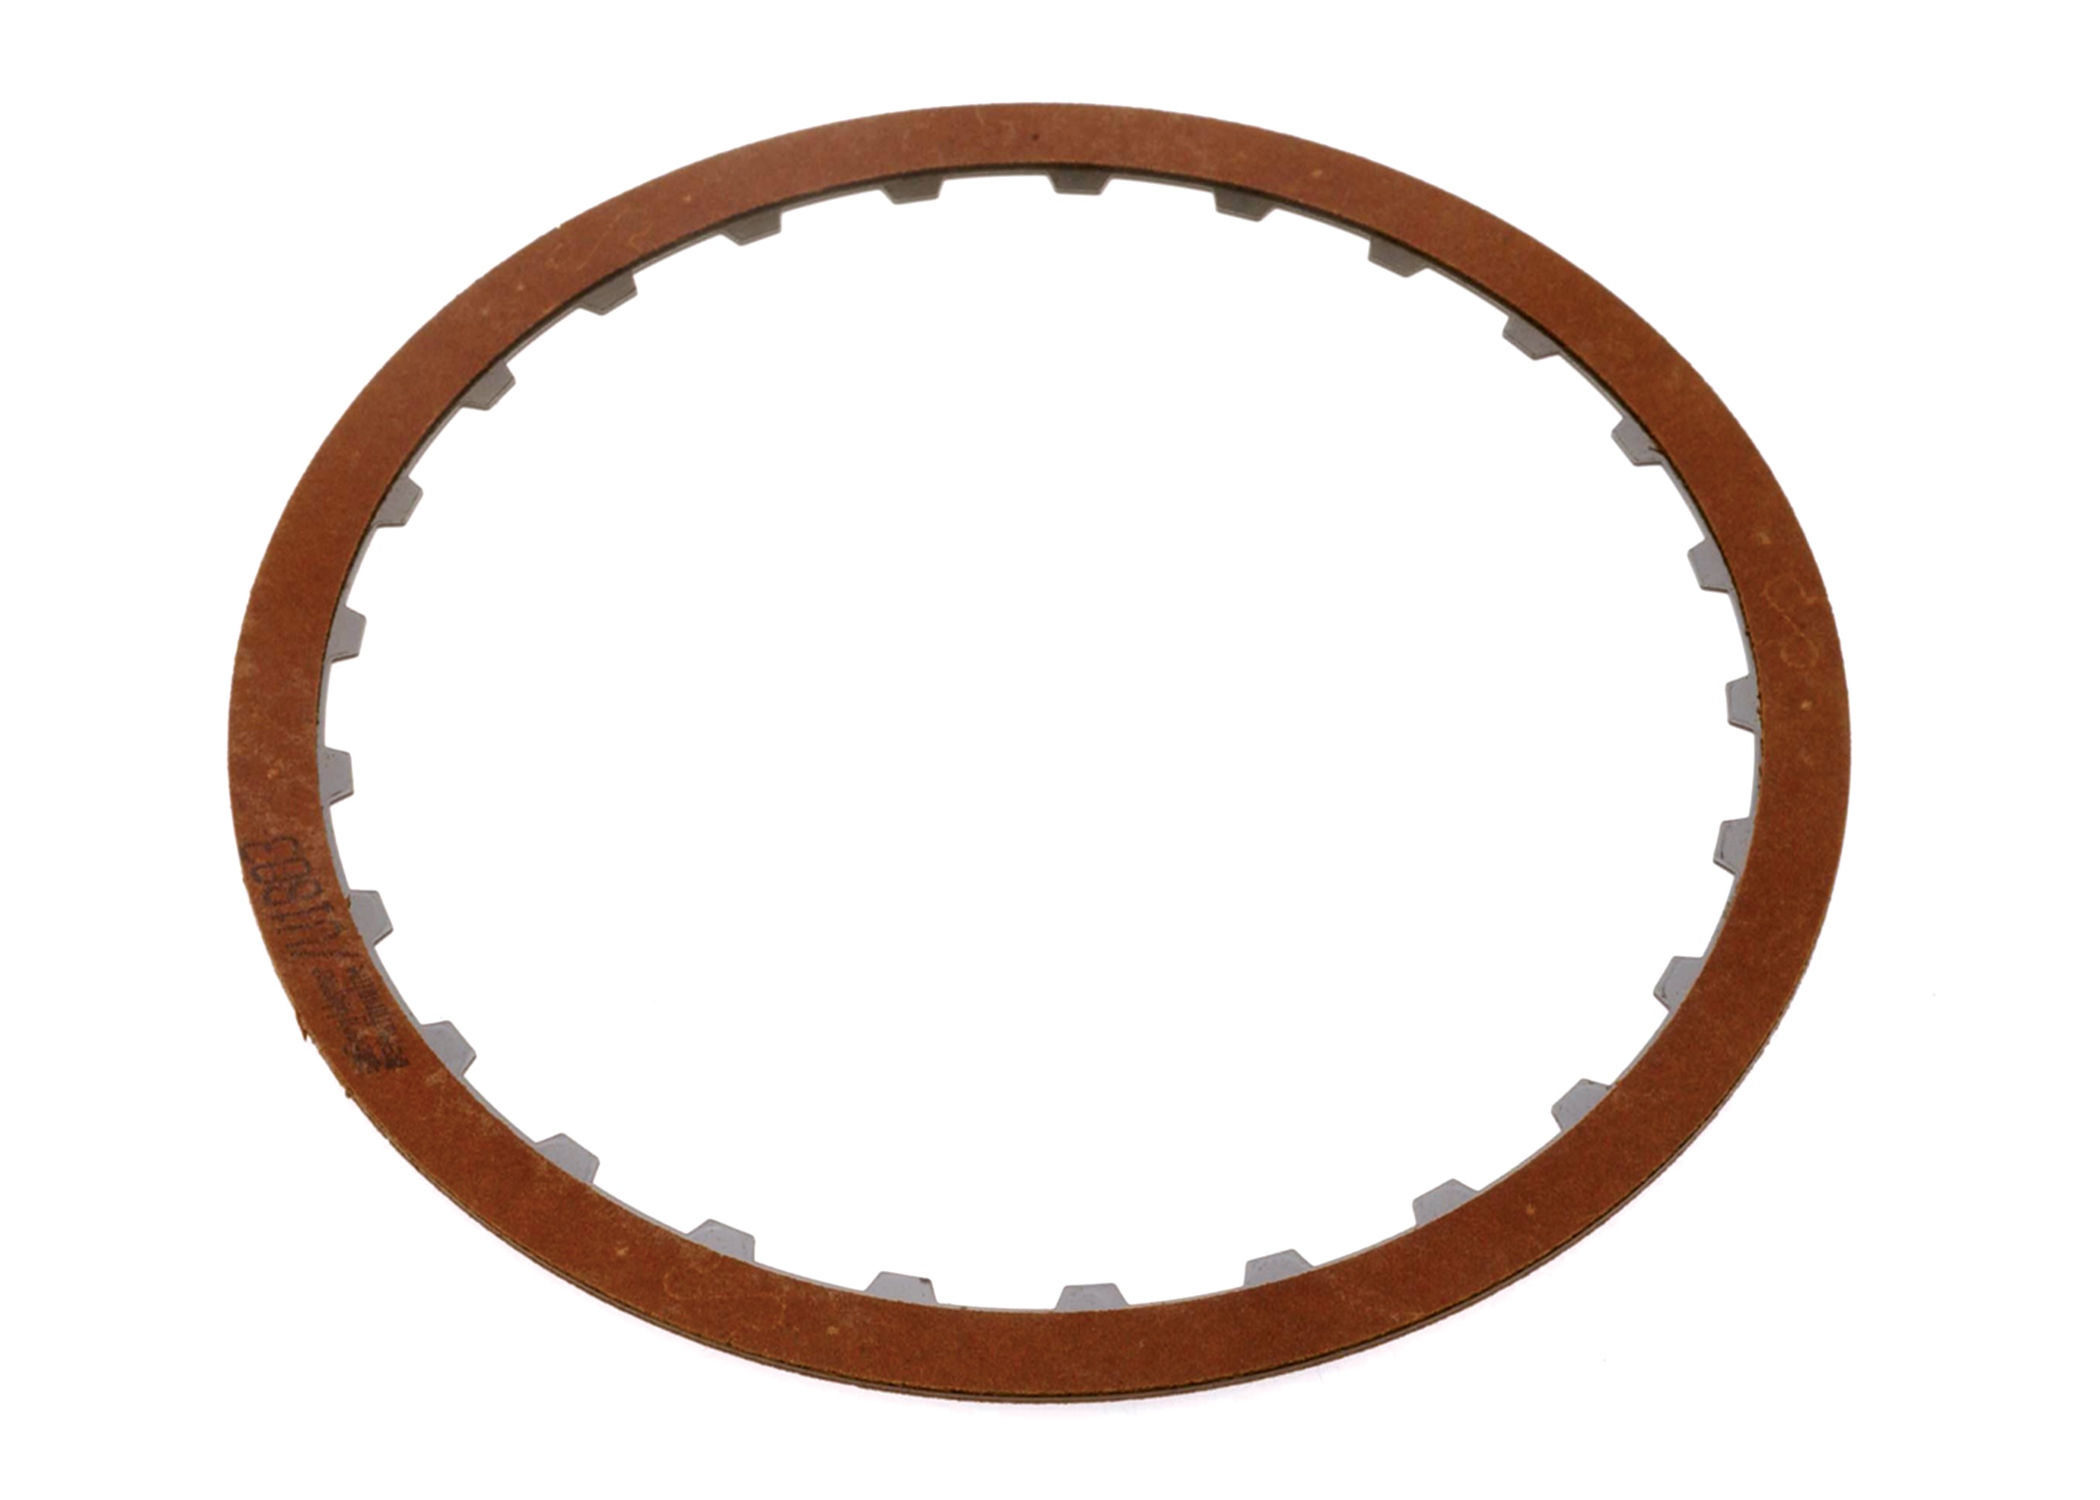 ACDELCO GM ORIGINAL EQUIPMENT - Transmission Clutch Friction Plate - DCB 24216946